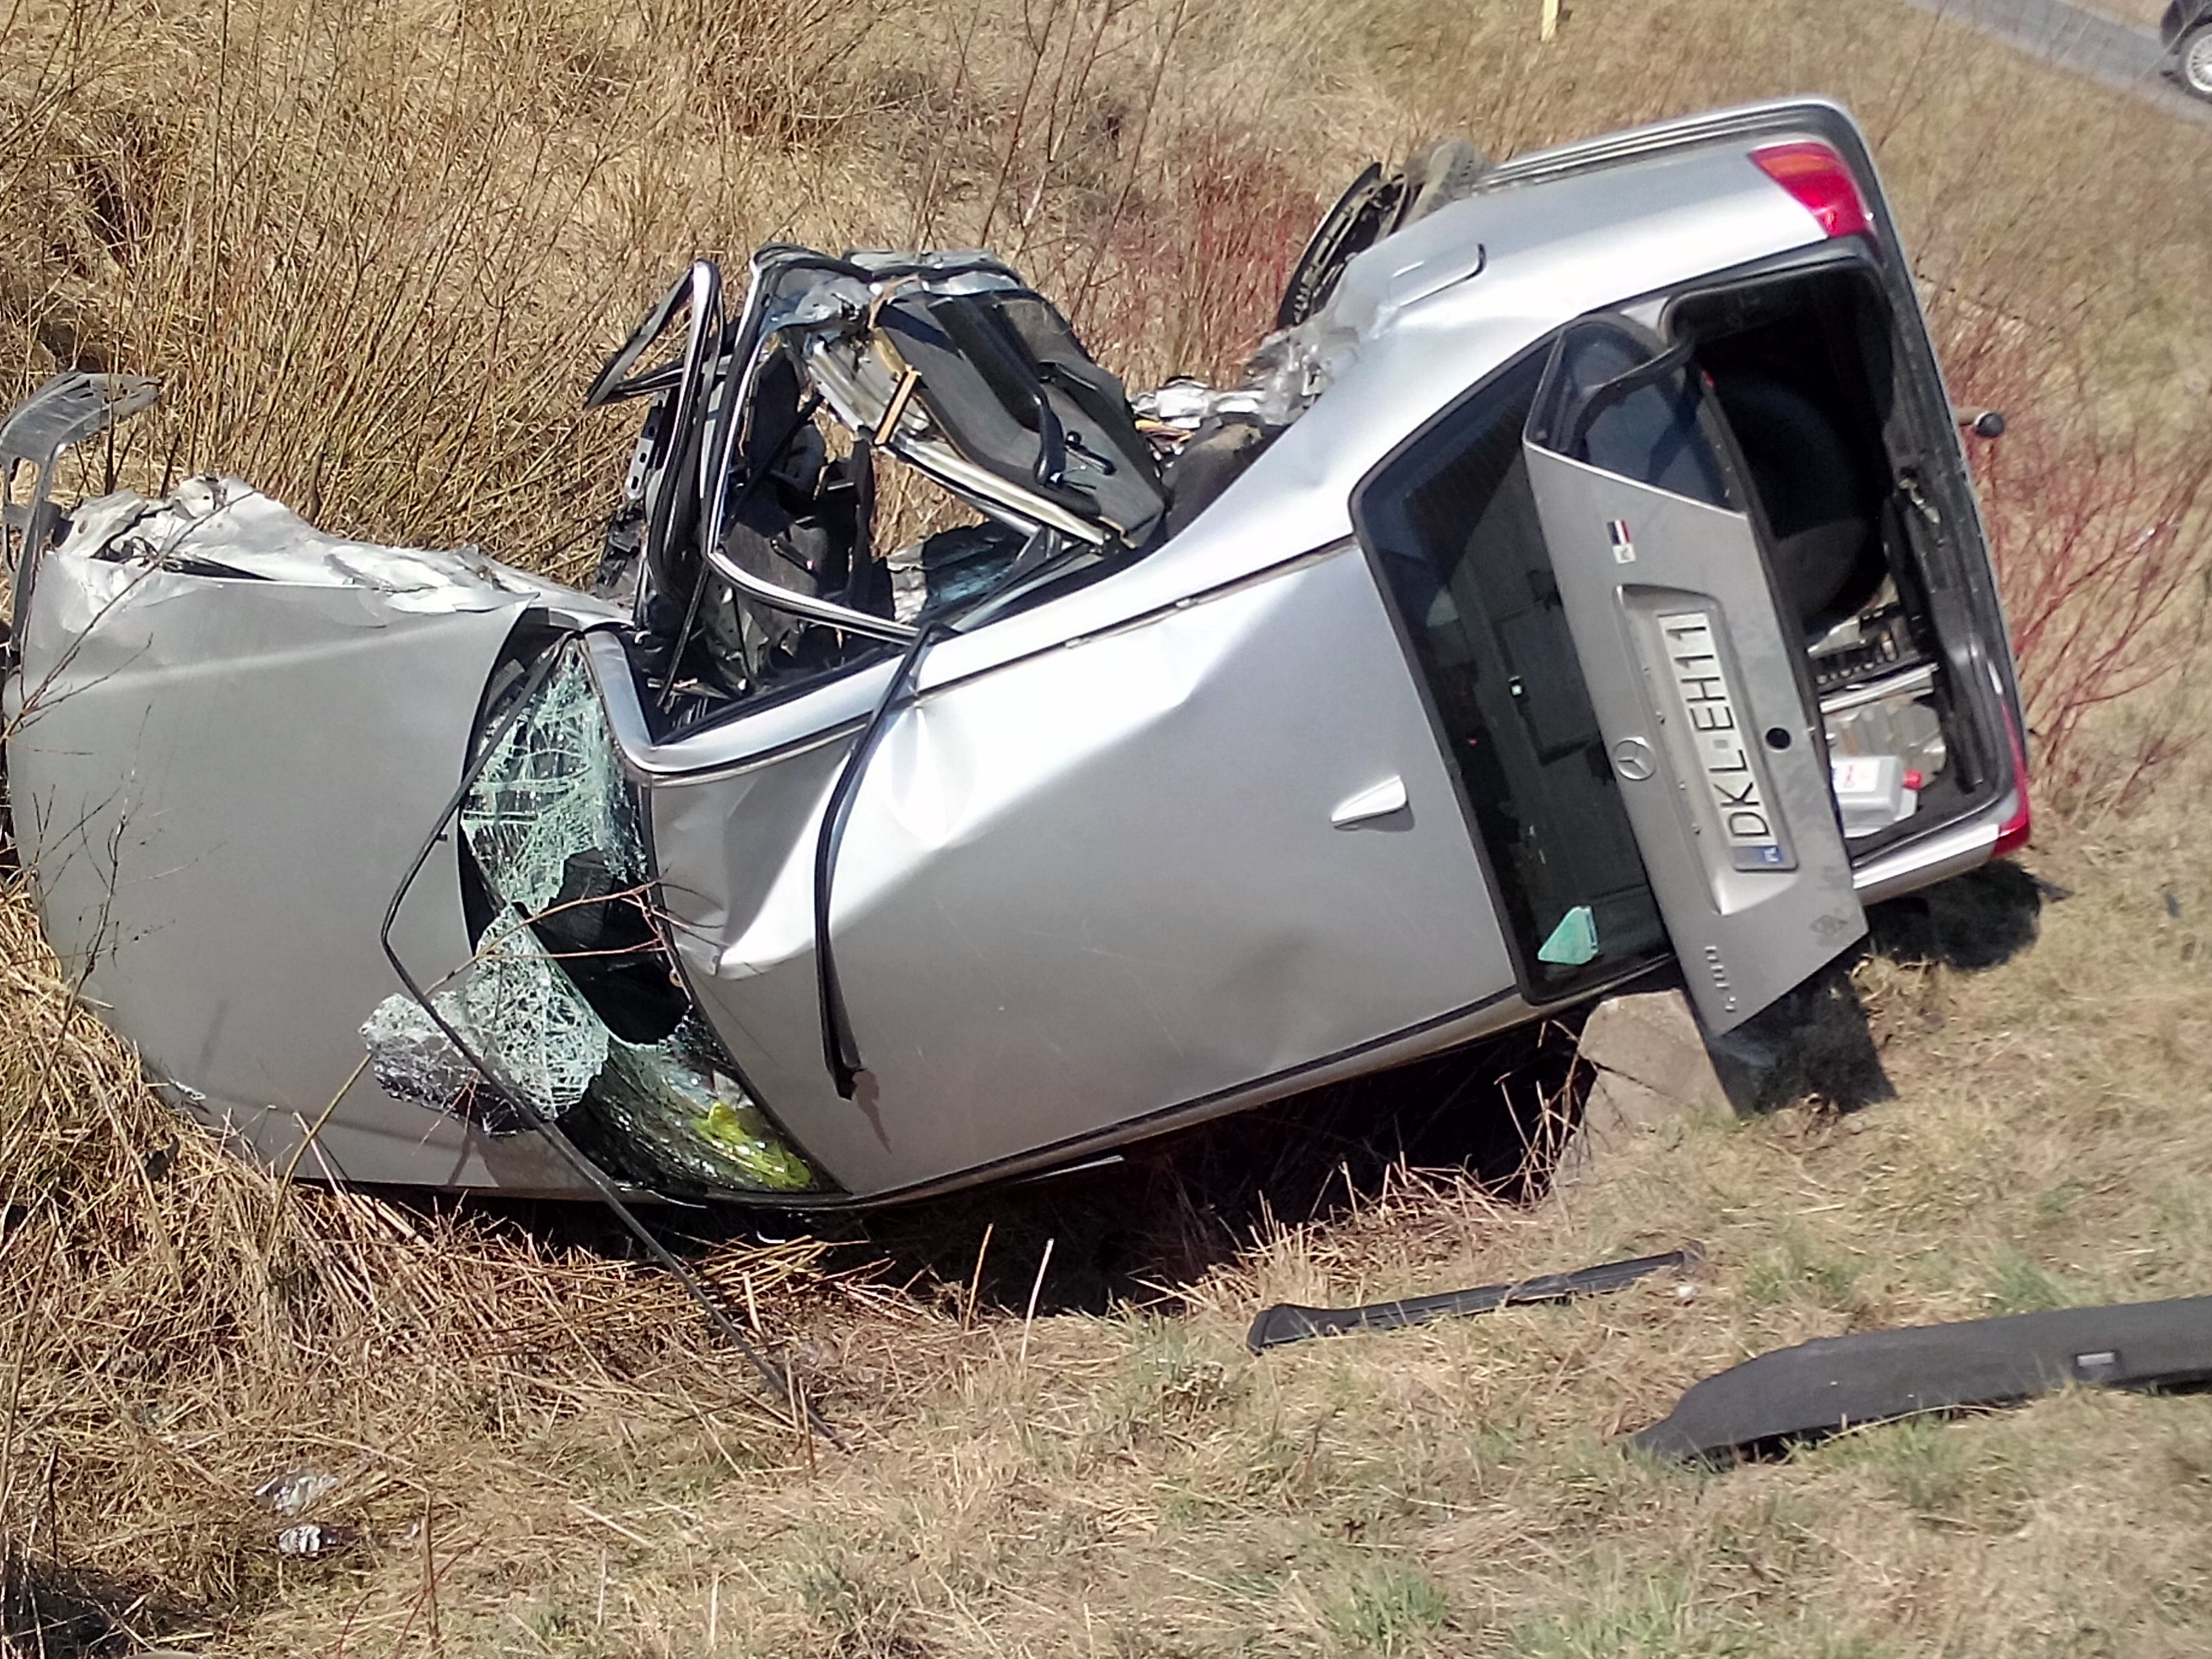 Car in a ditch after an accident free image